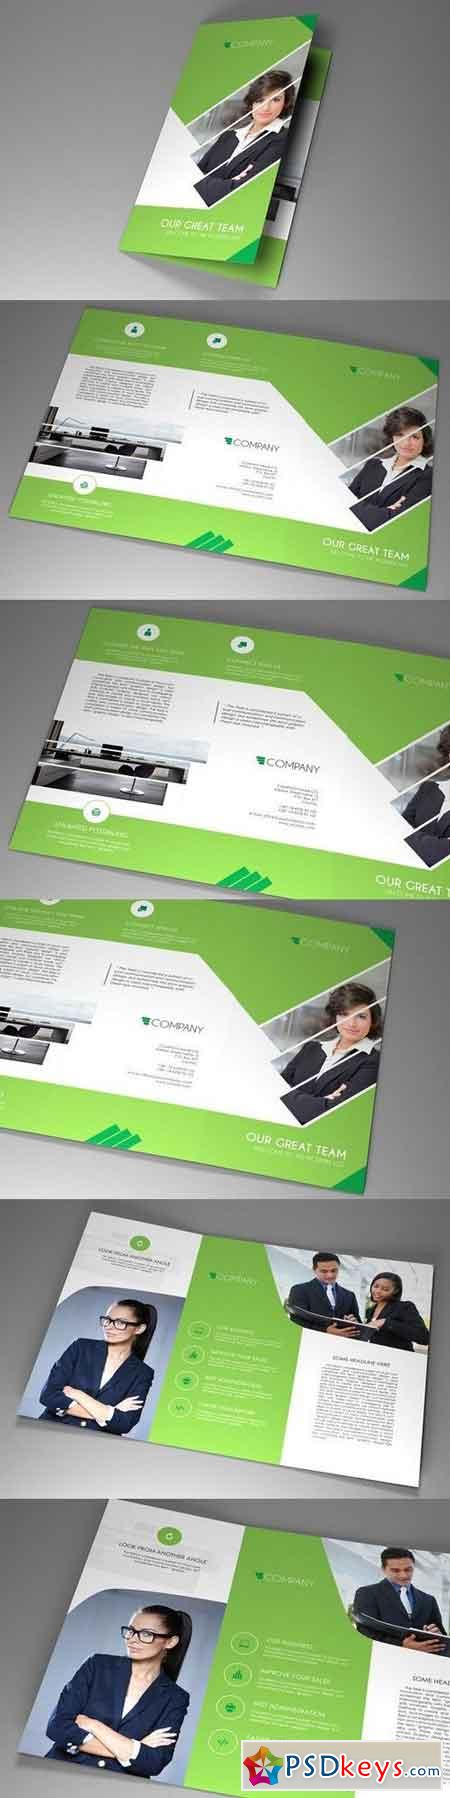 Trifold Indesign Brochure Fancy vol2 1201415